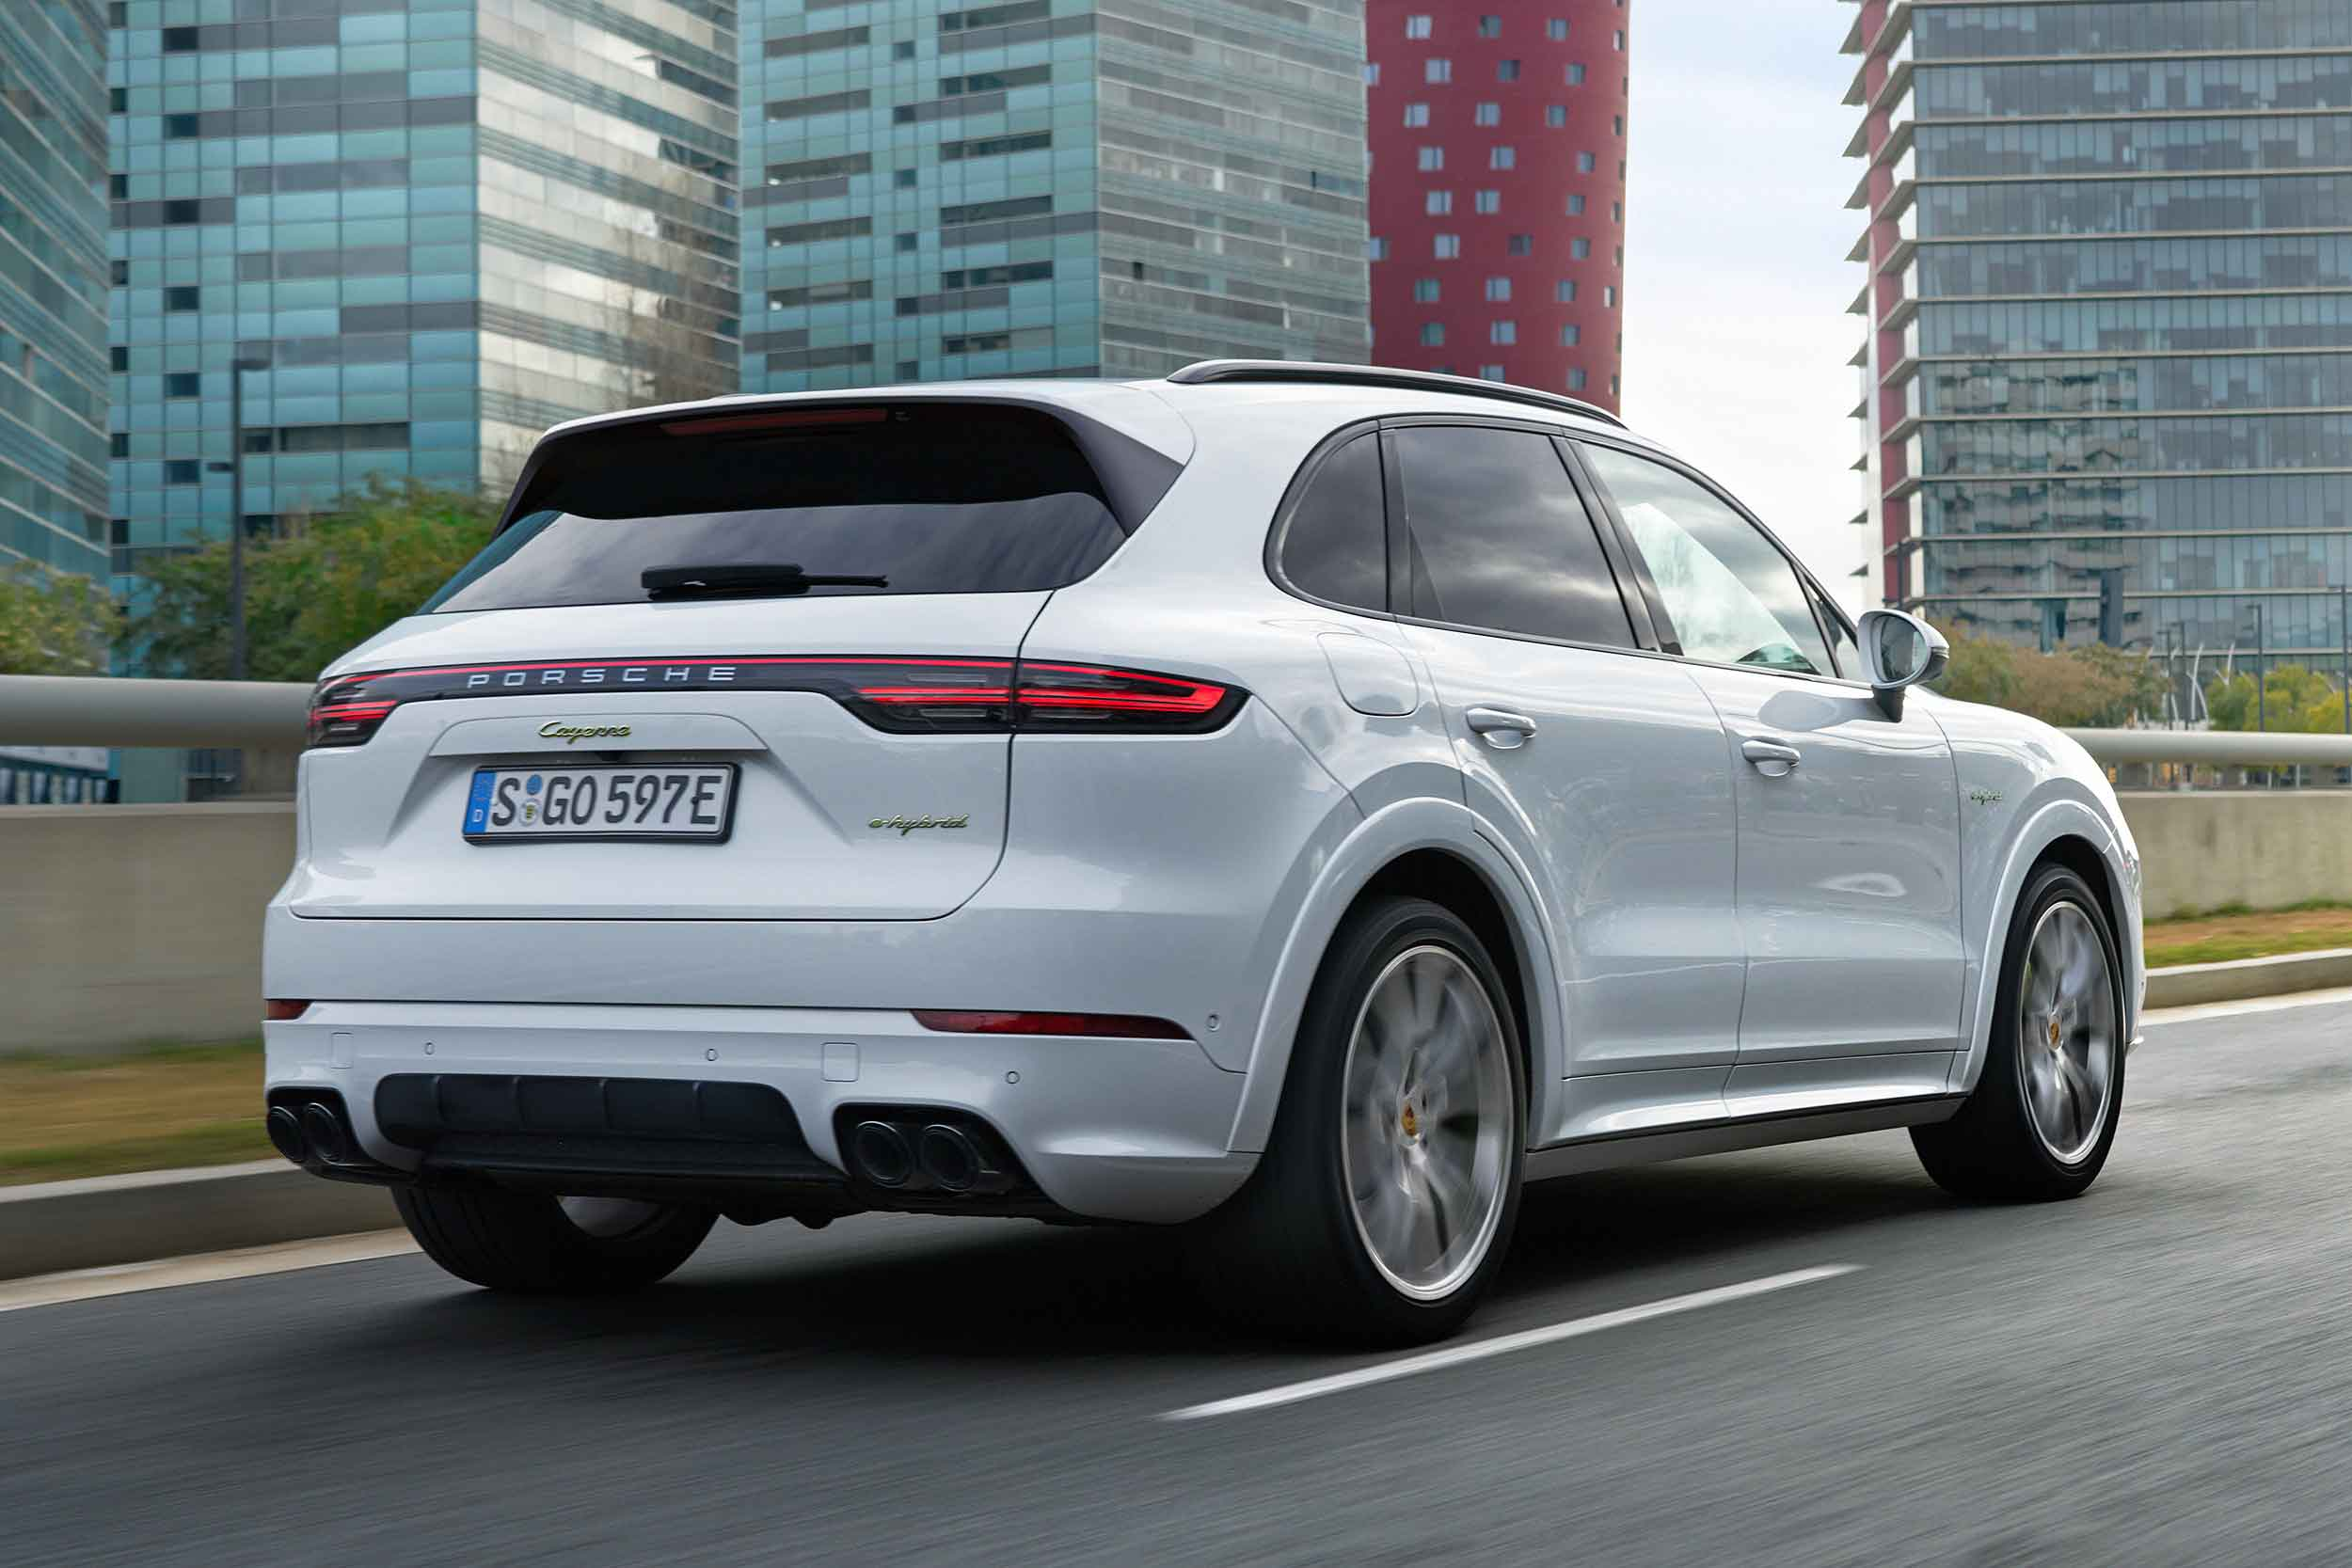 2018 porsche cayenne e hybrid has a 27 mile ev range prices from 67 128 motoring research. Black Bedroom Furniture Sets. Home Design Ideas